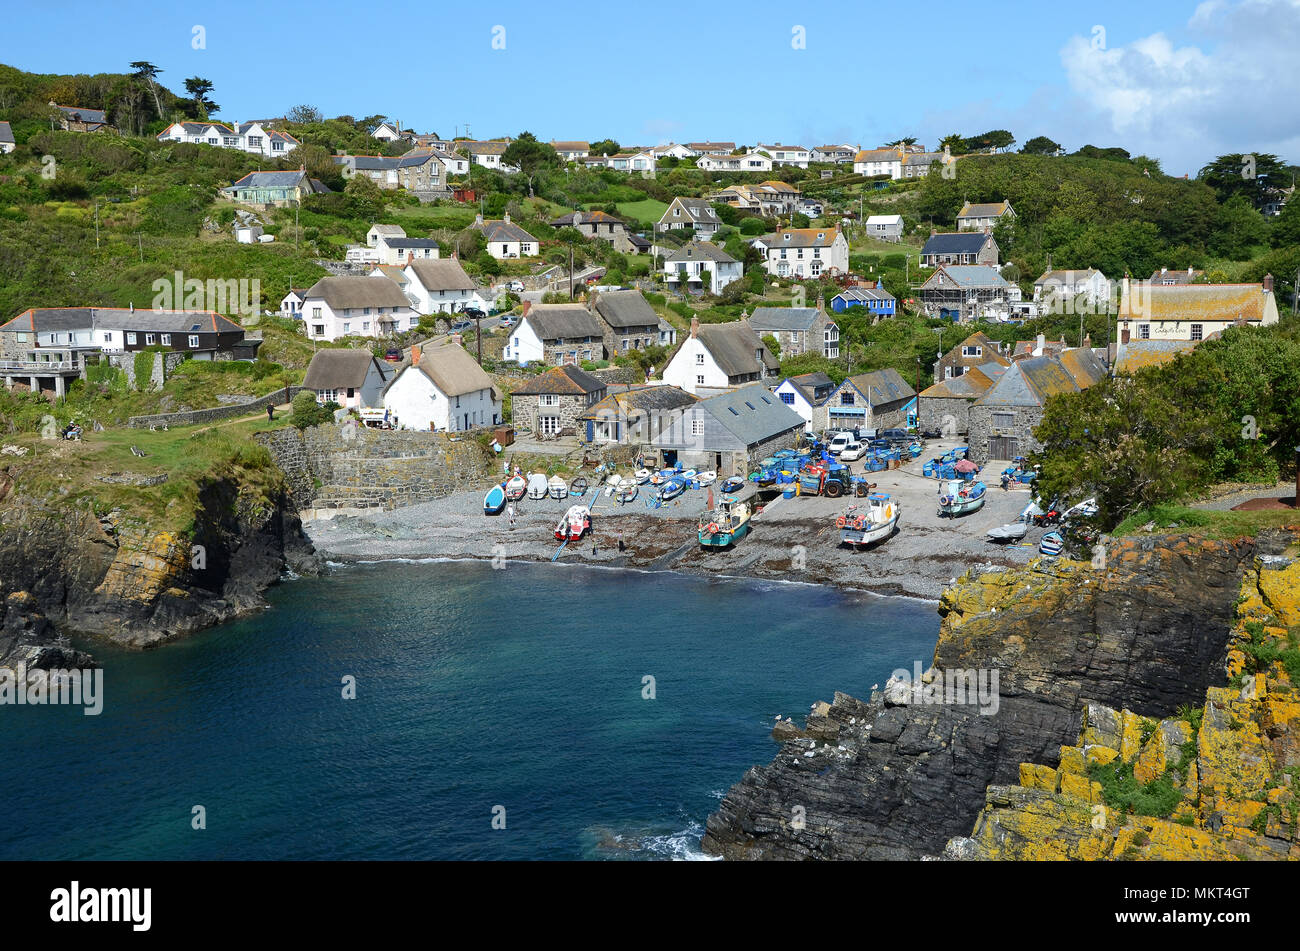 the cornish fishing village of cadgwith on the lizard peninsular in cornwall, england, britain, uk. - Stock Image